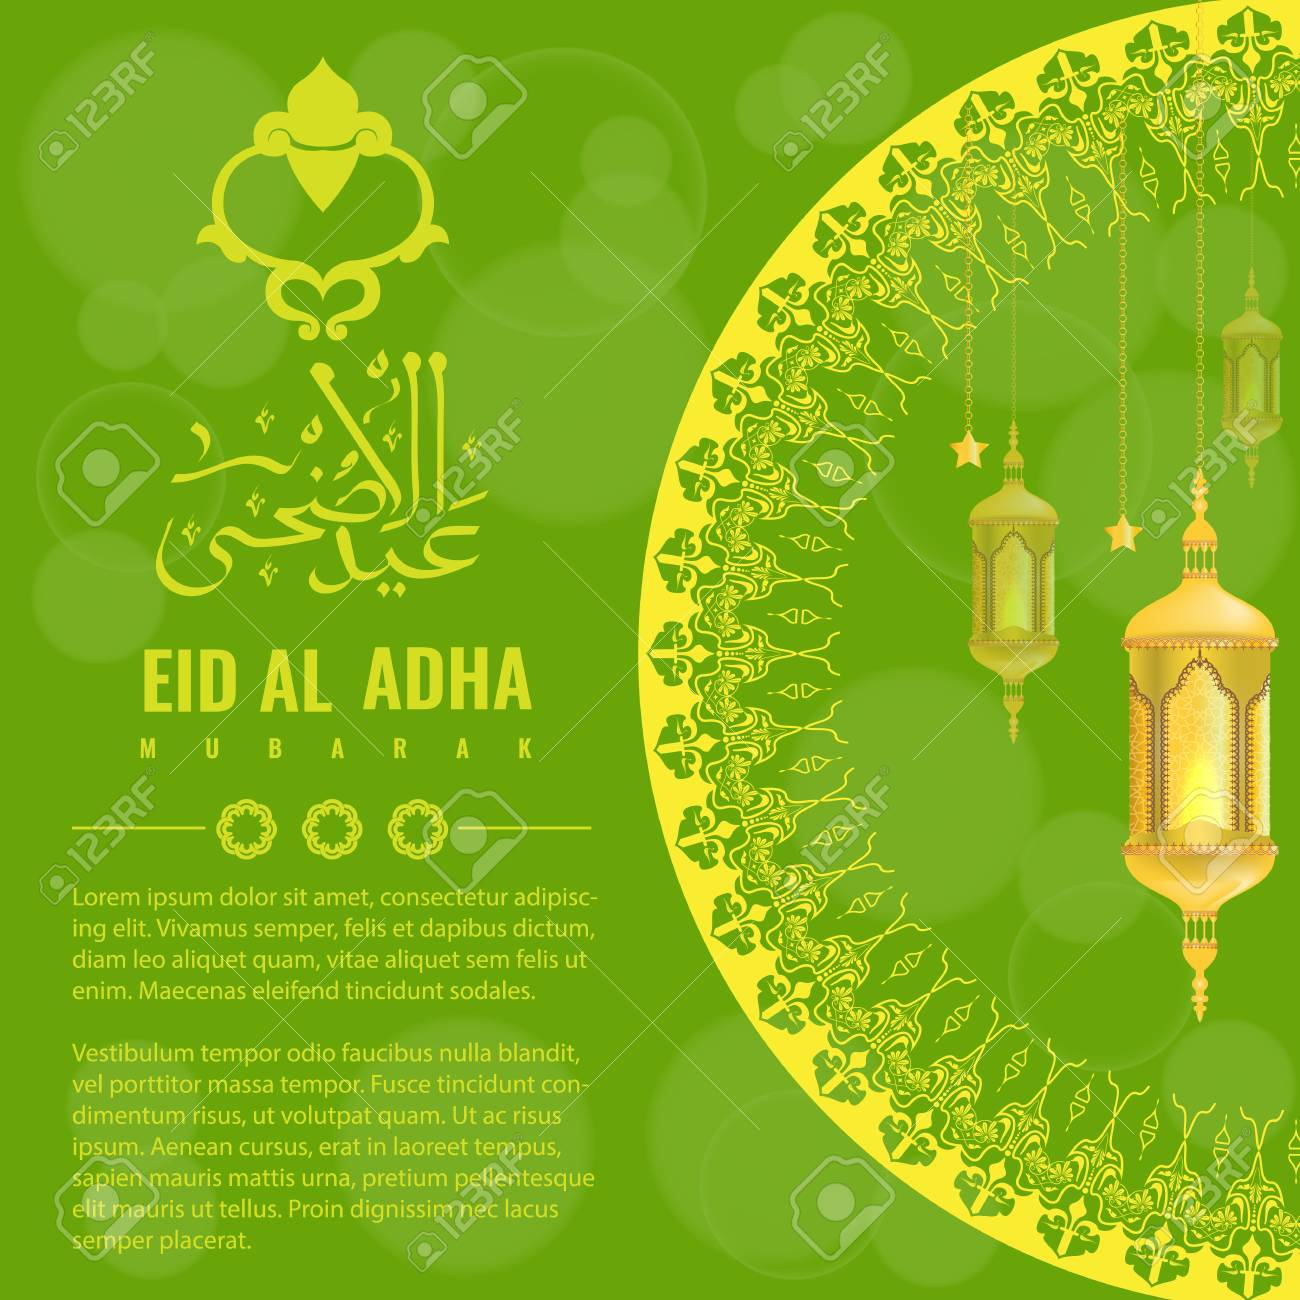 Vector of eid adha in arabic calligraphy style with circle vector of eid adha in arabic calligraphy style with circle oranament for greeting card design kristyandbryce Image collections